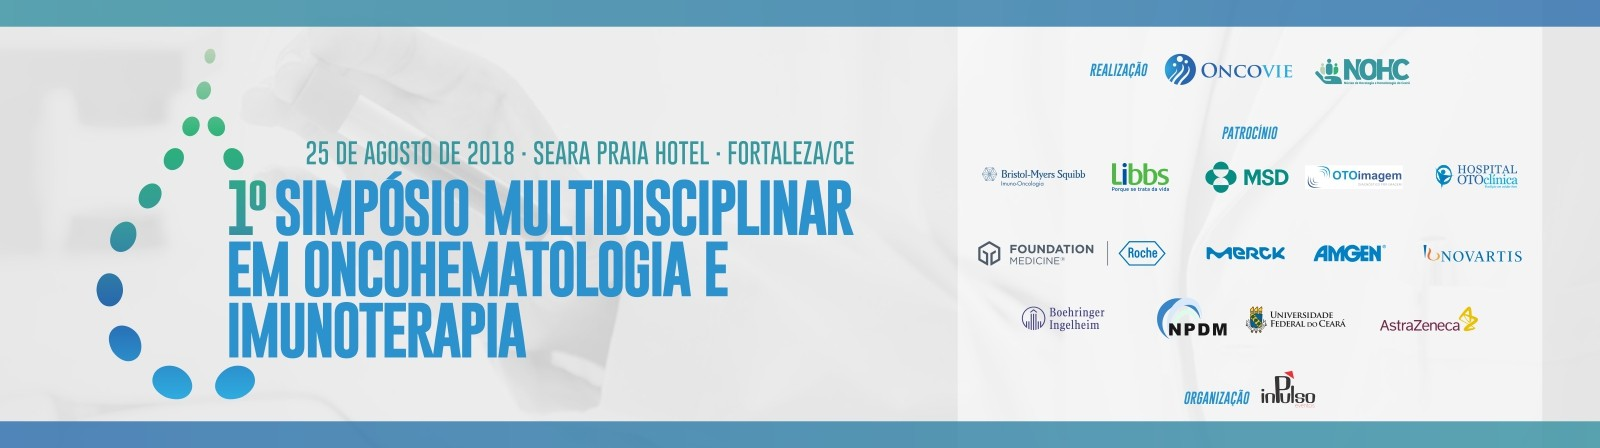 banner-site-inpulso